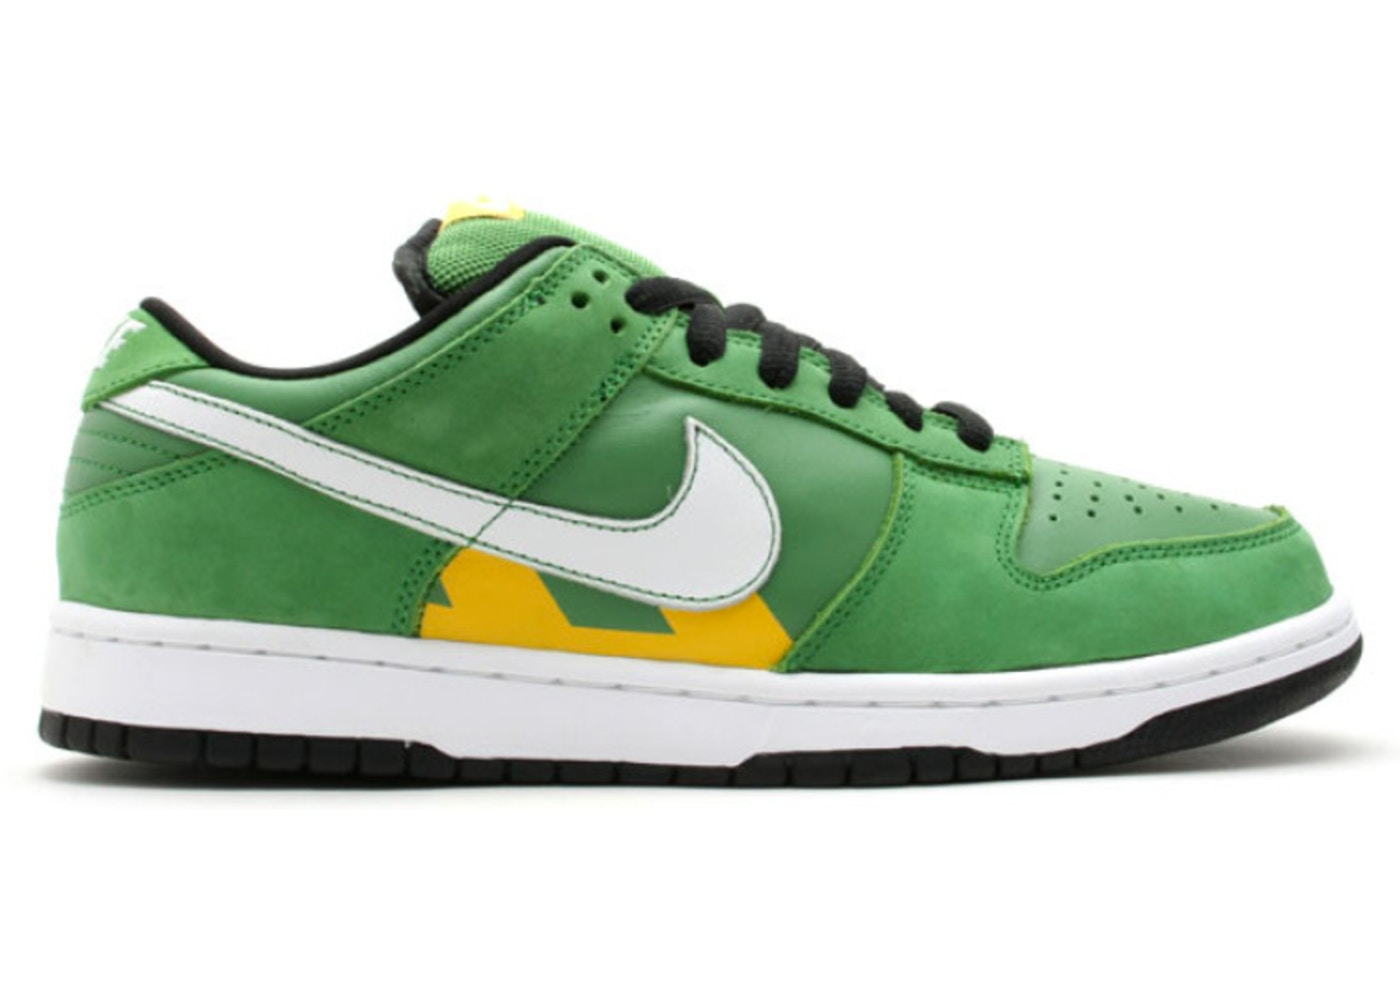 newest collection e28d1 2f201 Nike Dunk SB Low Tokyo Green Taxi - 304292-311